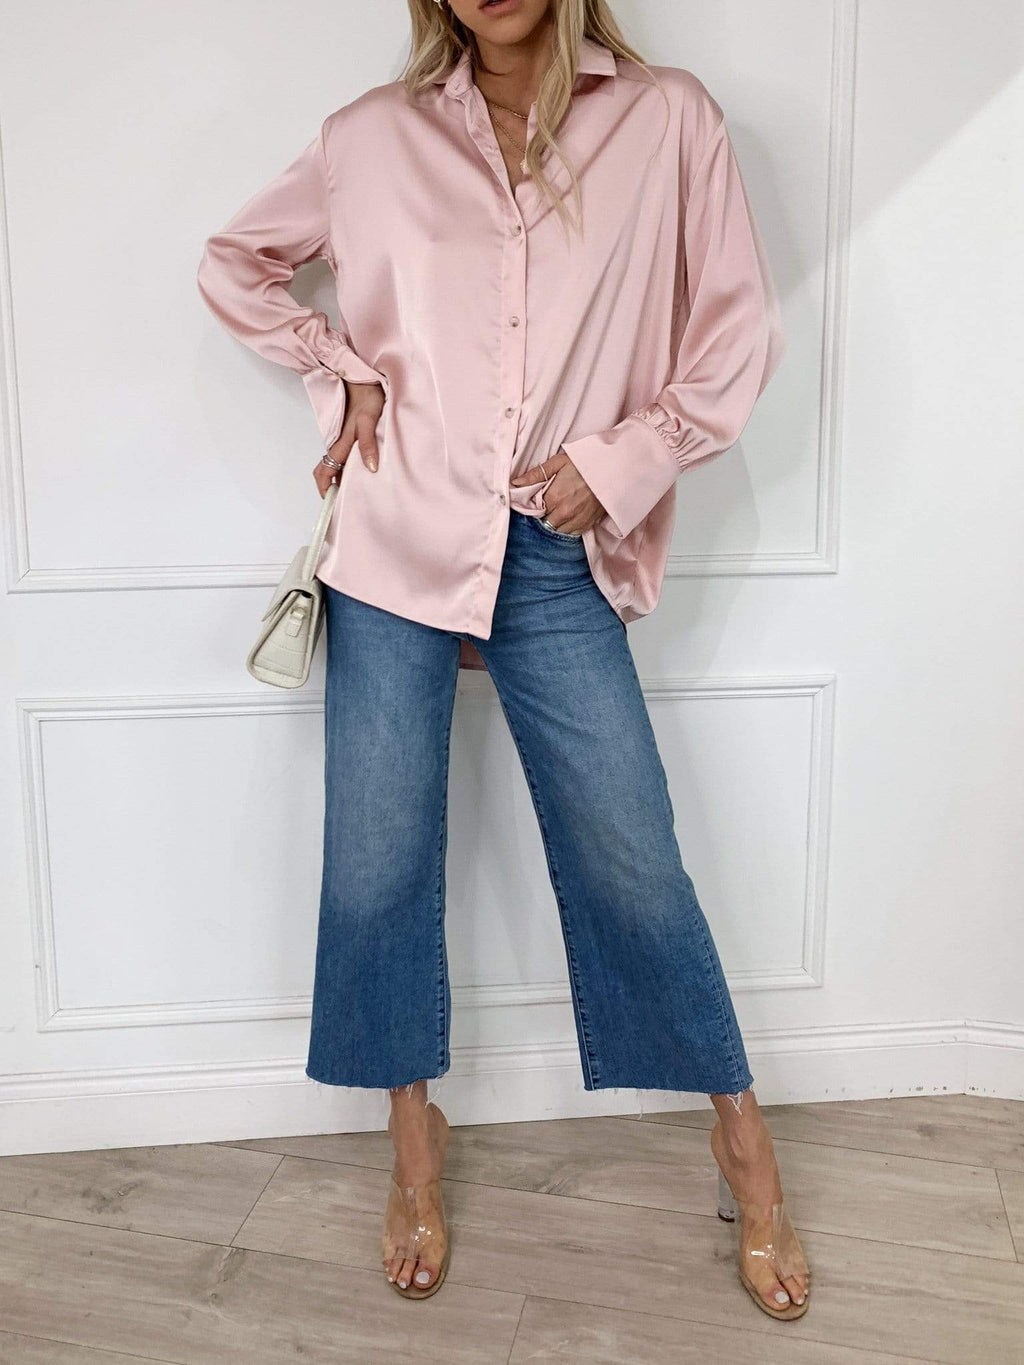 Soft pink shirt from Pretty Lavish is cut from a soft satin material. Designed with fluted sleeves and finished with tortoise shell buttons for those extra loved details. The relaxed silhouette makes this style endlessly versatile. Style yours with jeans or leather trousers.